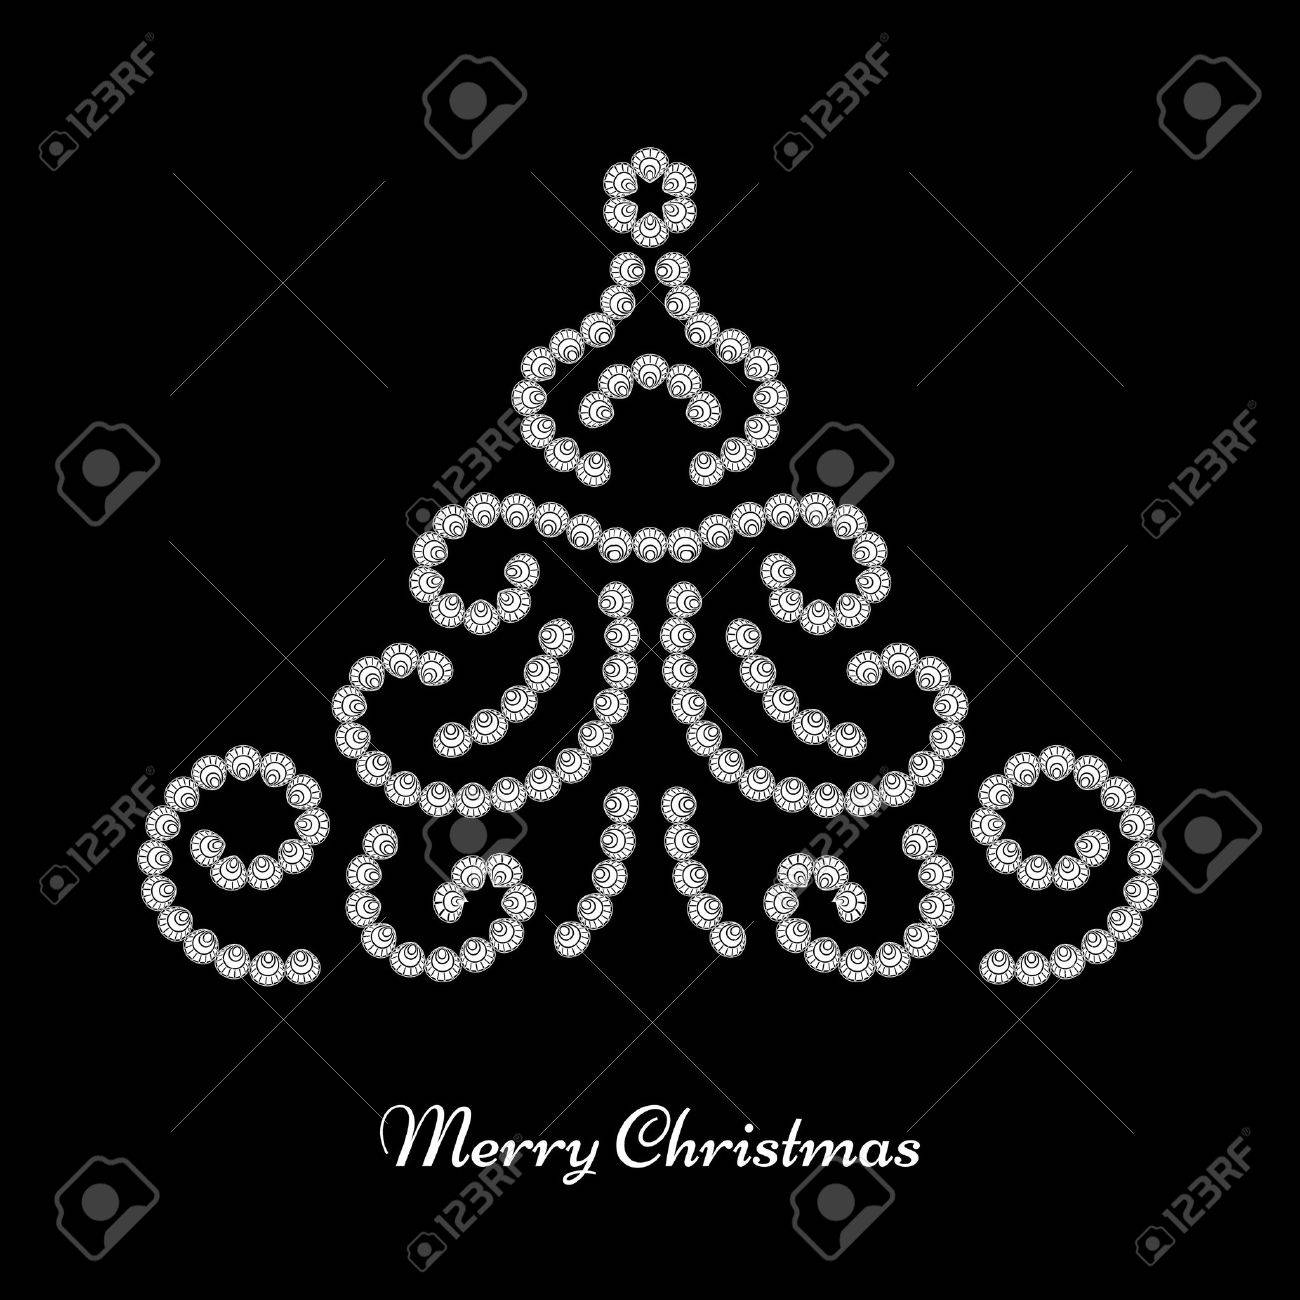 Dotted Jewelry Christmas Tree On Black Background Royalty Free ...